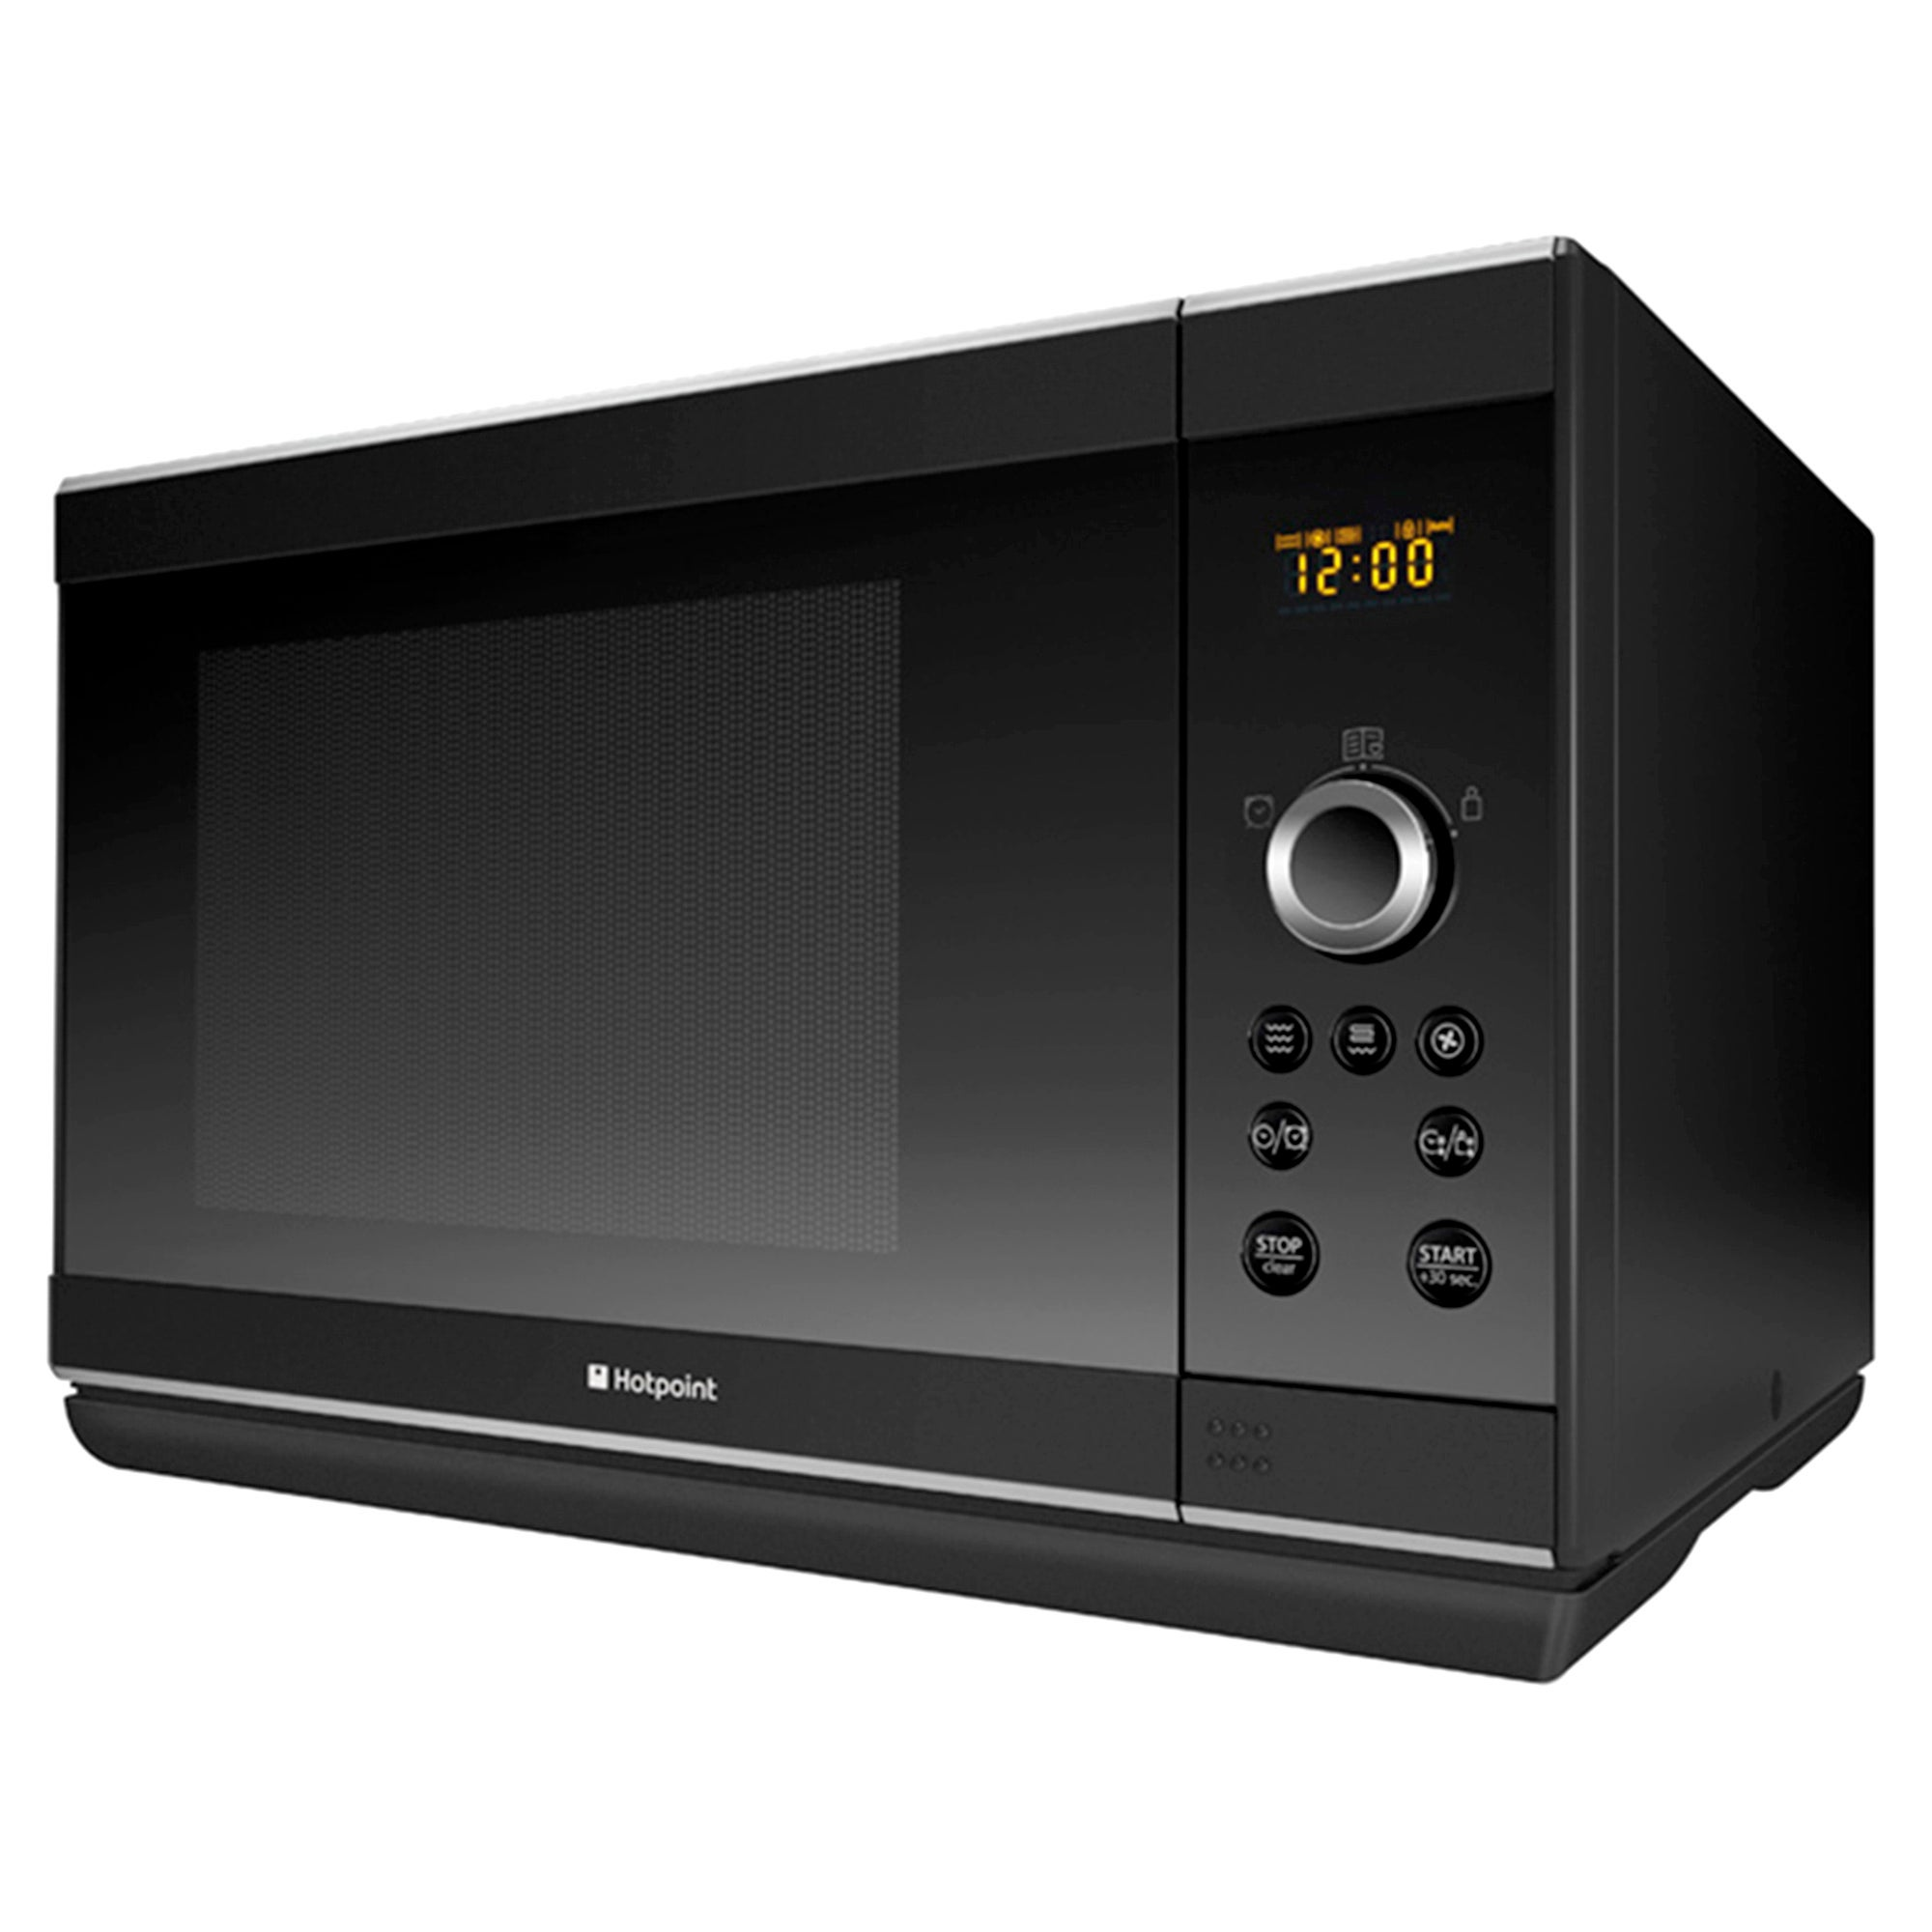 Hotpoint MWH2824B 28L 900w Stainless Steel Black Combi Microwave